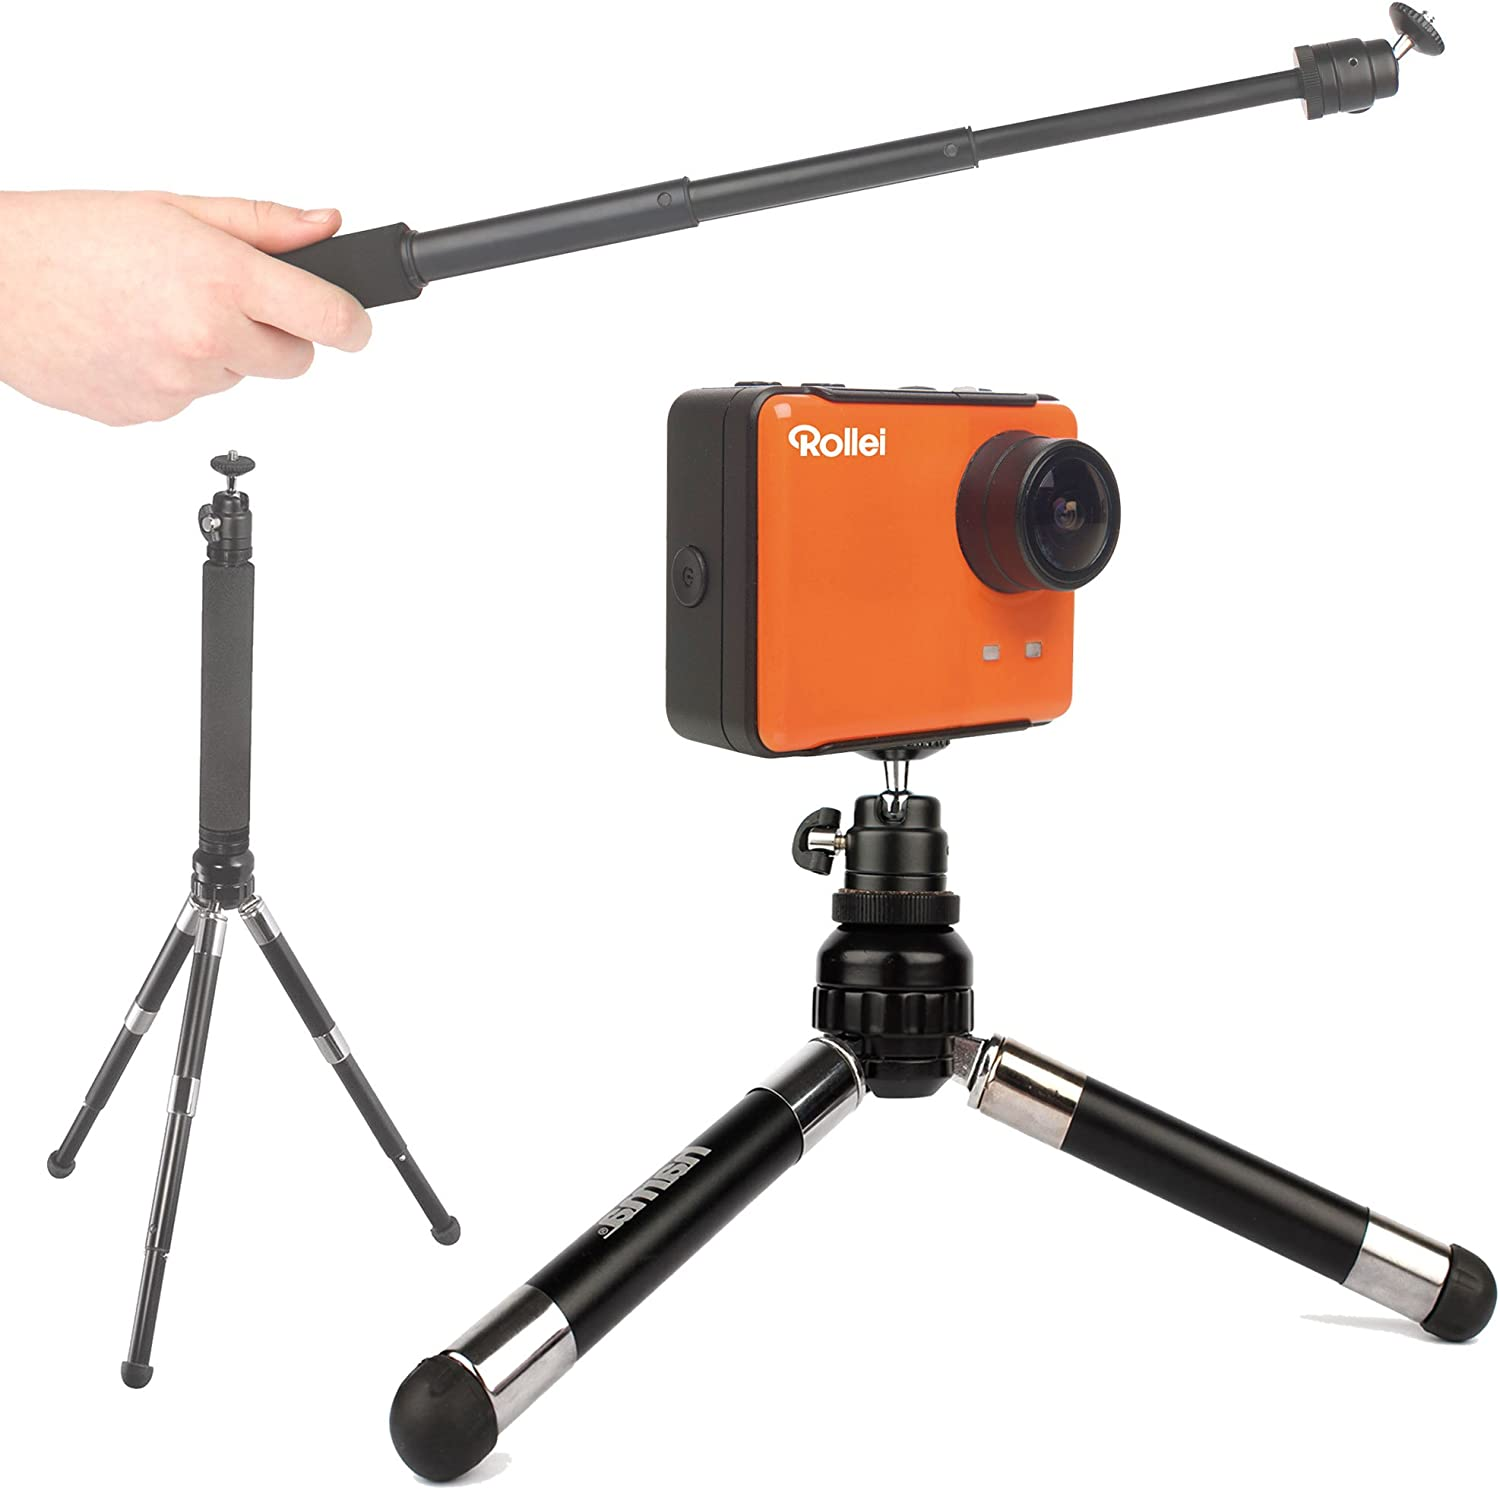 Compatible with Rollei S-50 WiFi Nitro Circus Standard /& 5S WiFi Action Cameras Ski DURAGADGET Lightweight Telescopic 2-in-1 Tripod//Monopod